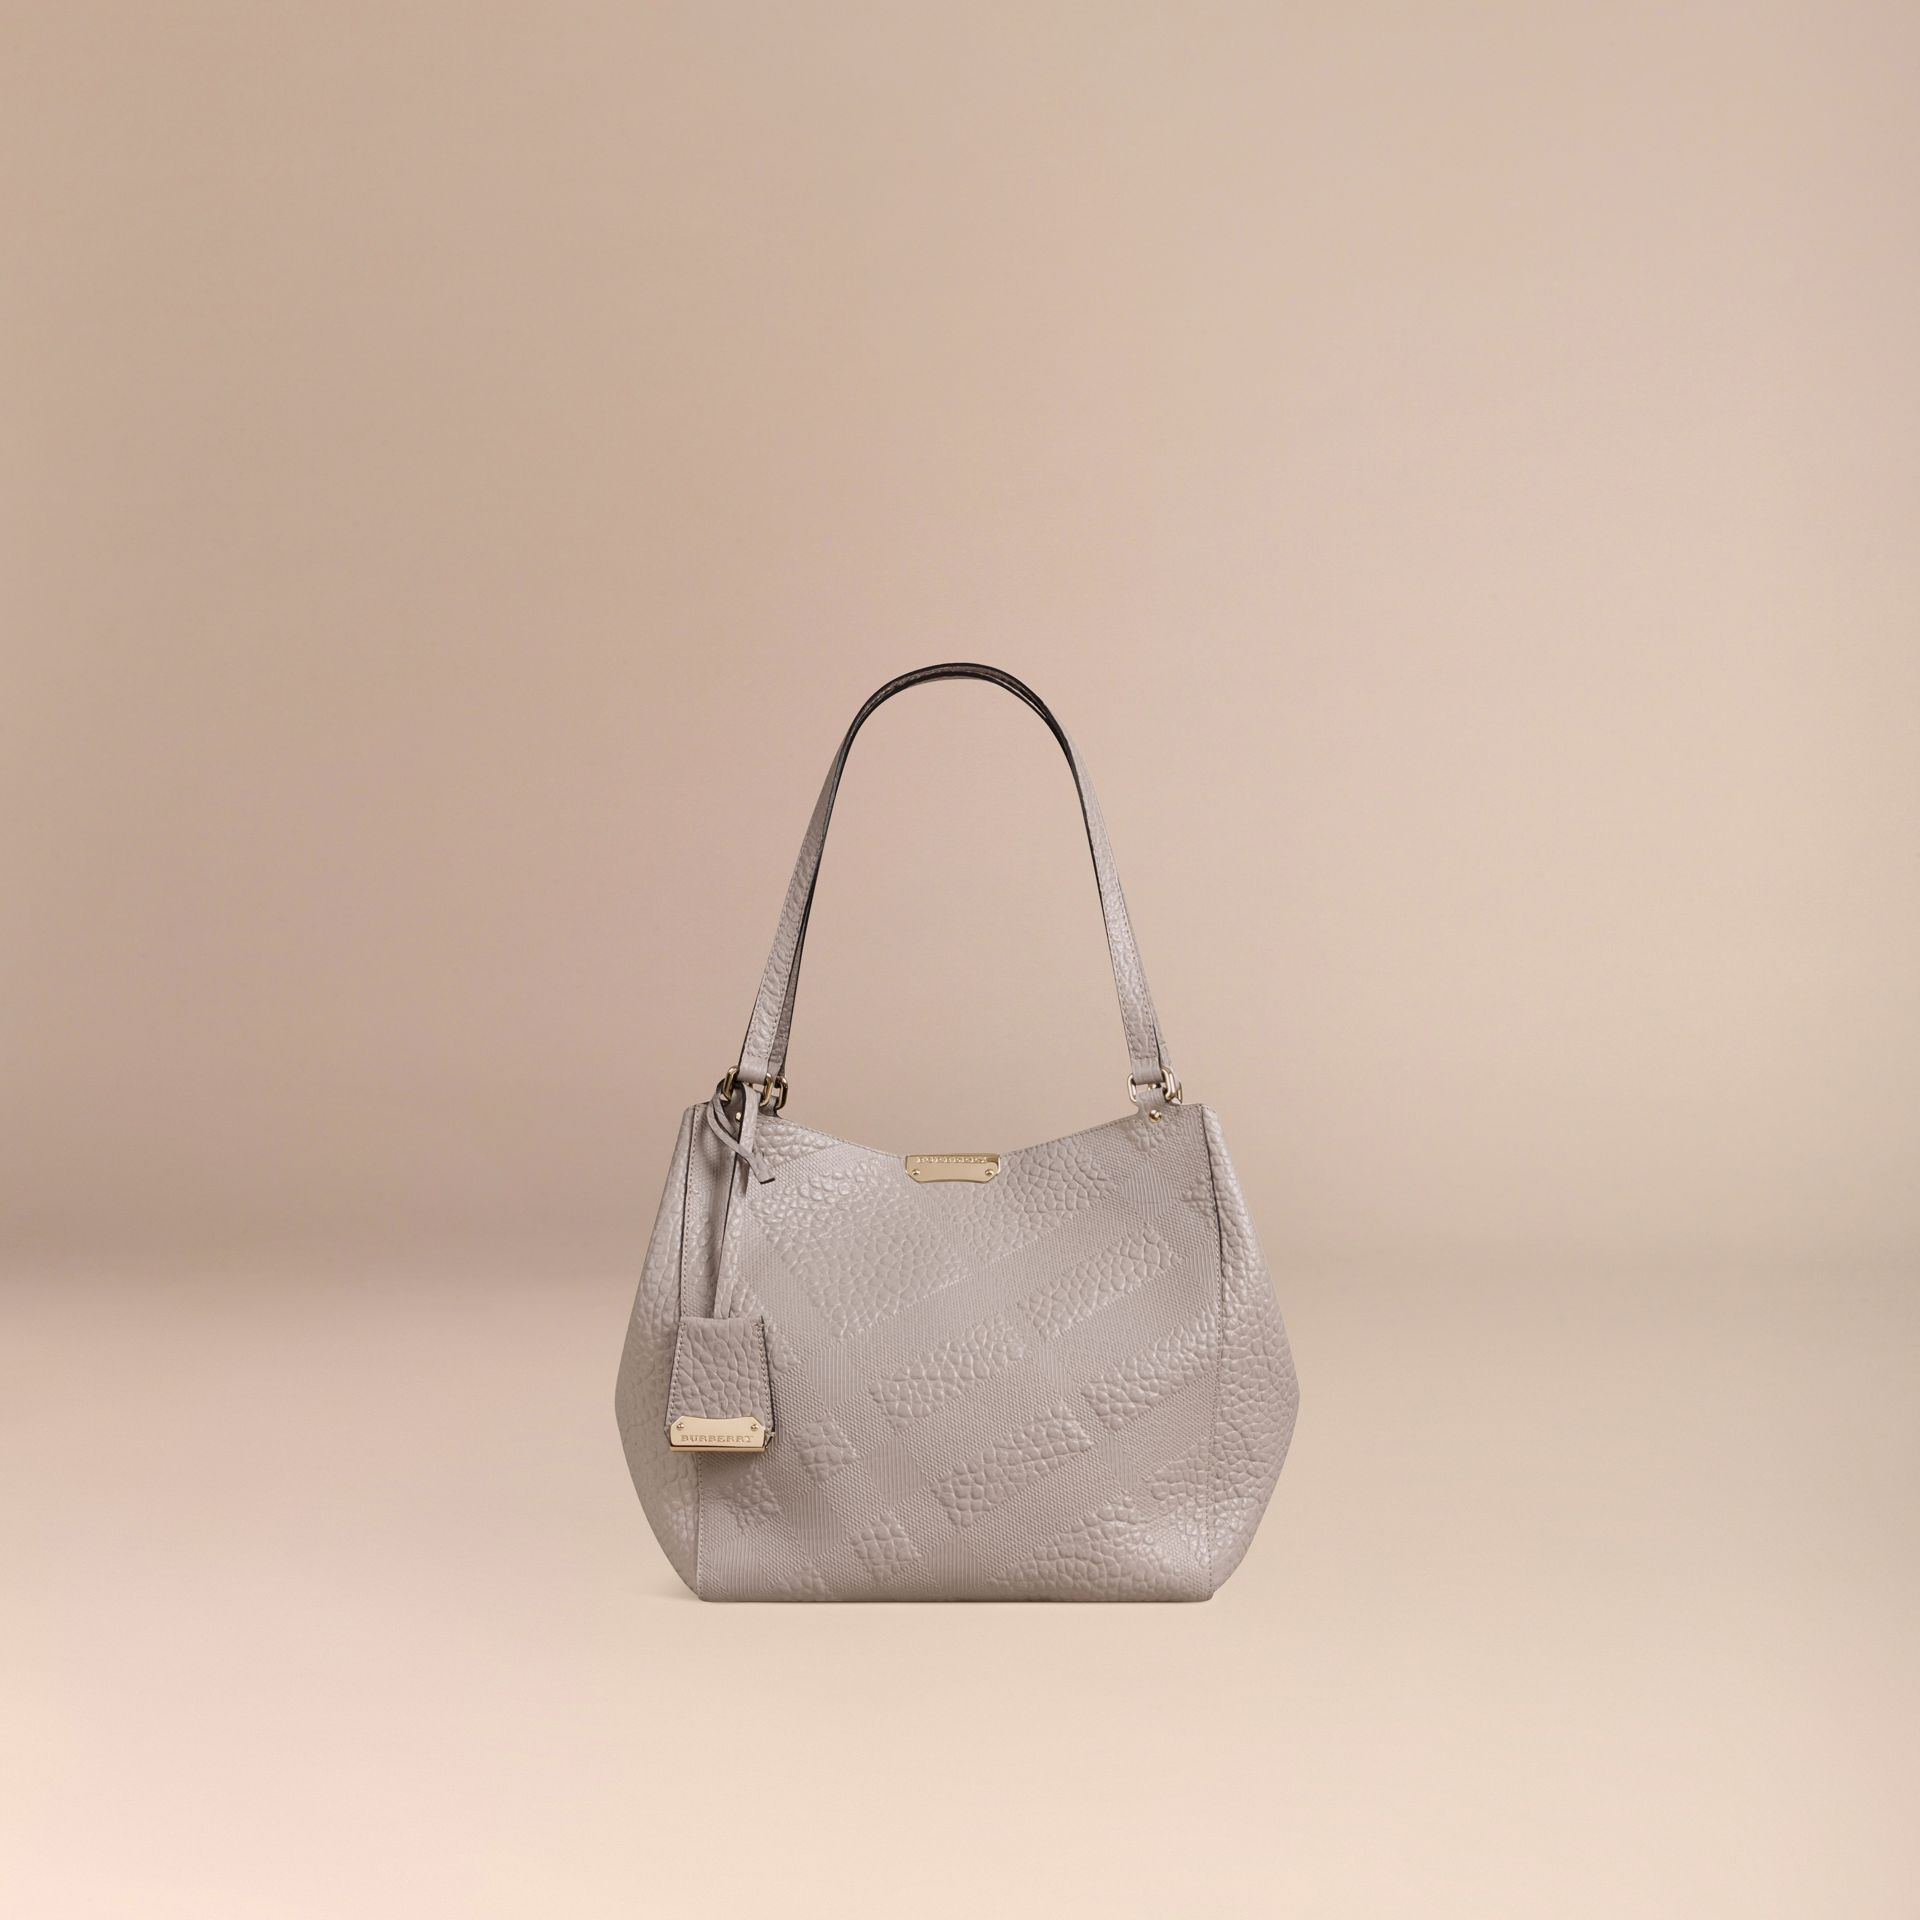 Gris pâle Petit sac The Canter en cuir avec motif check en relief Gris Pâle - photo de la galerie 8